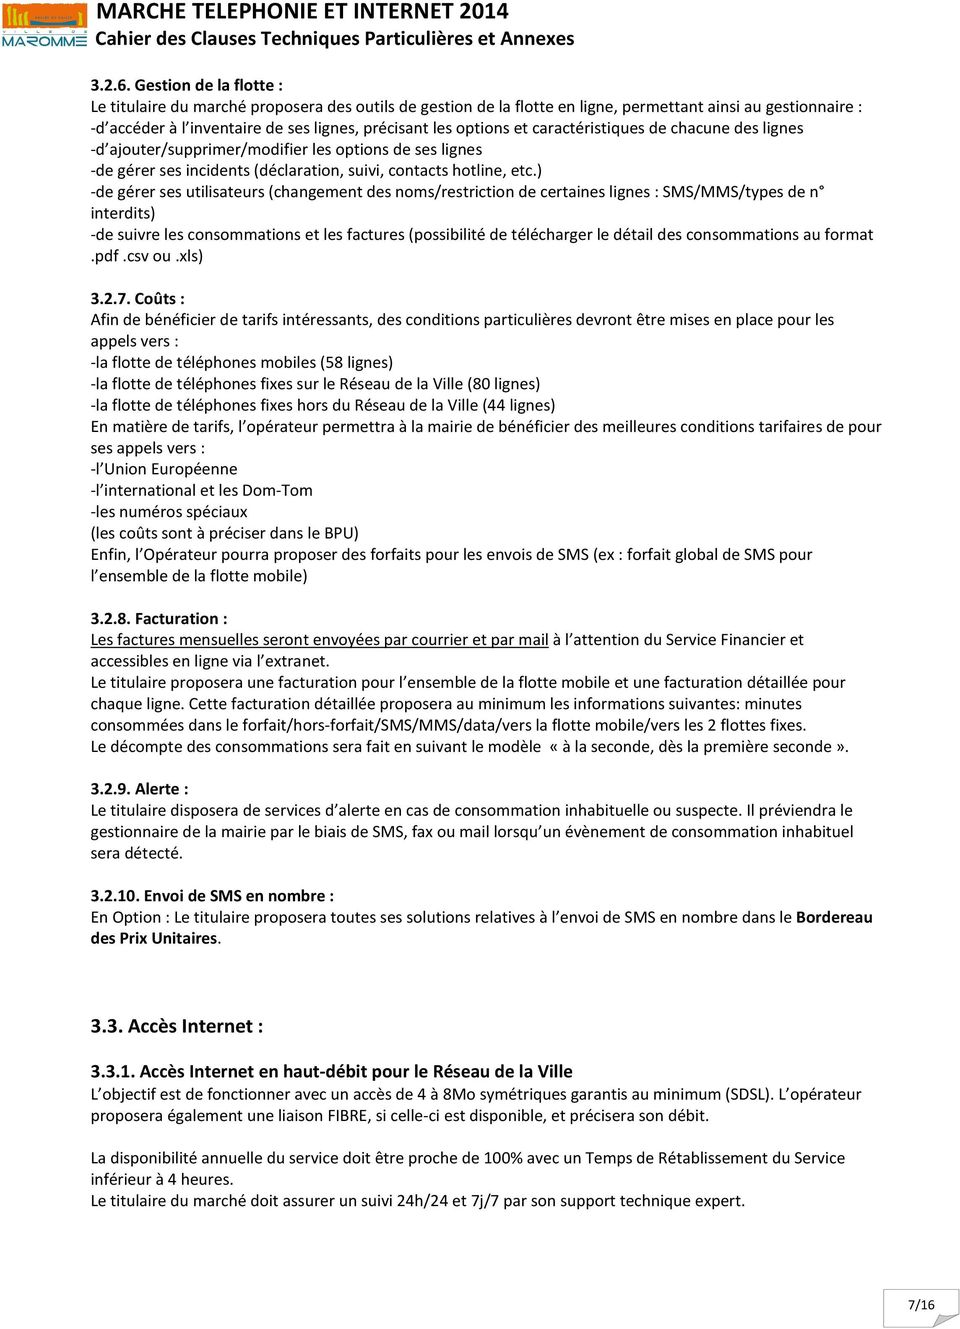 et caractéristiques de chacune des lignes -d ajouter/supprimer/modifier les options de ses lignes -de gérer ses incidents (déclaration, suivi, contacts hotline, etc.